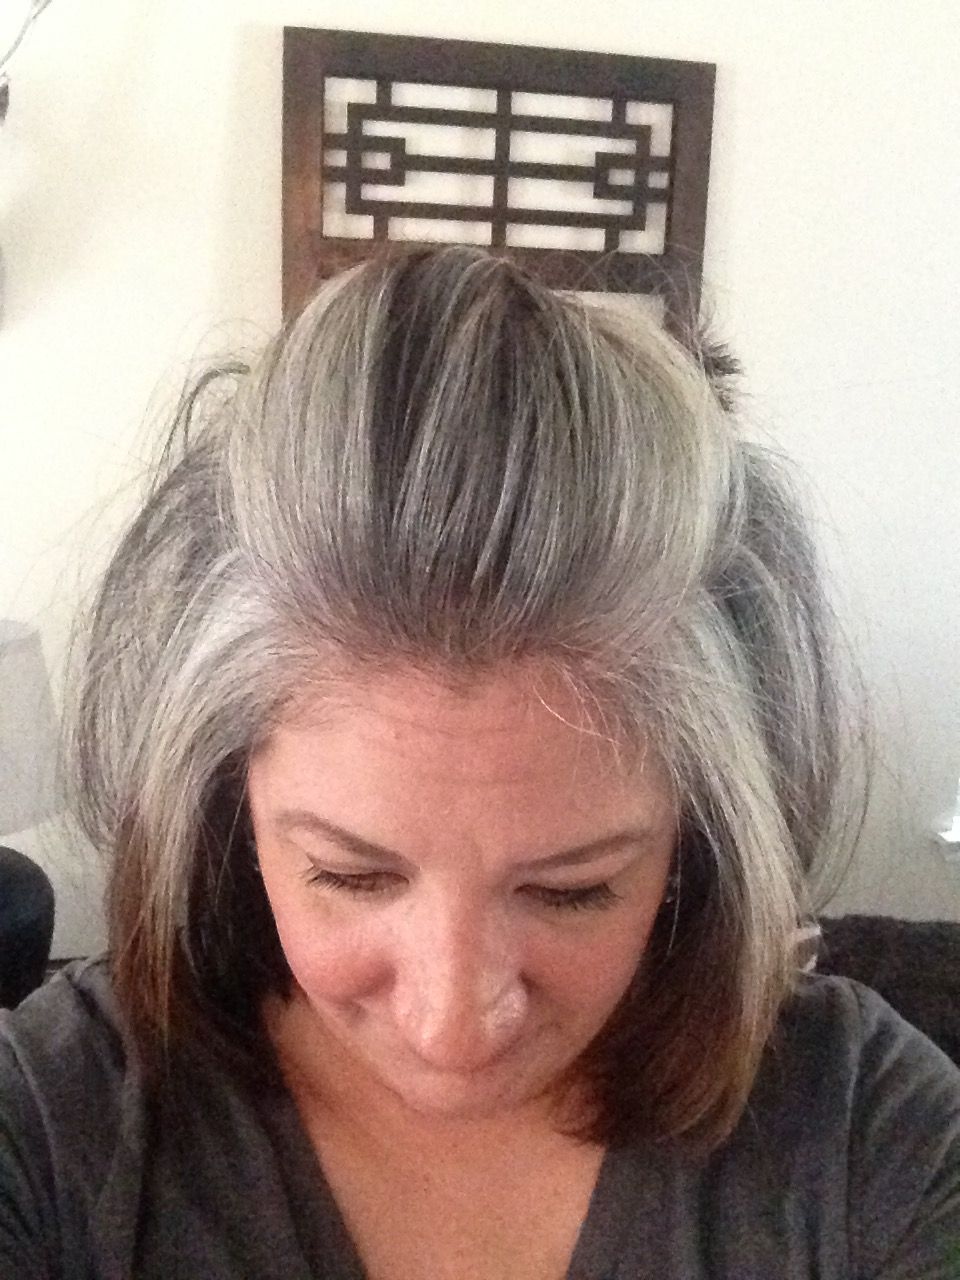 3 1 2 Months Of Growing Out My Grey Naturally Doesn T Feel Any Different Than My Natural Hair Did In Fac Gray Hair Growing Out Dying Gray Hair Long Gray Hair